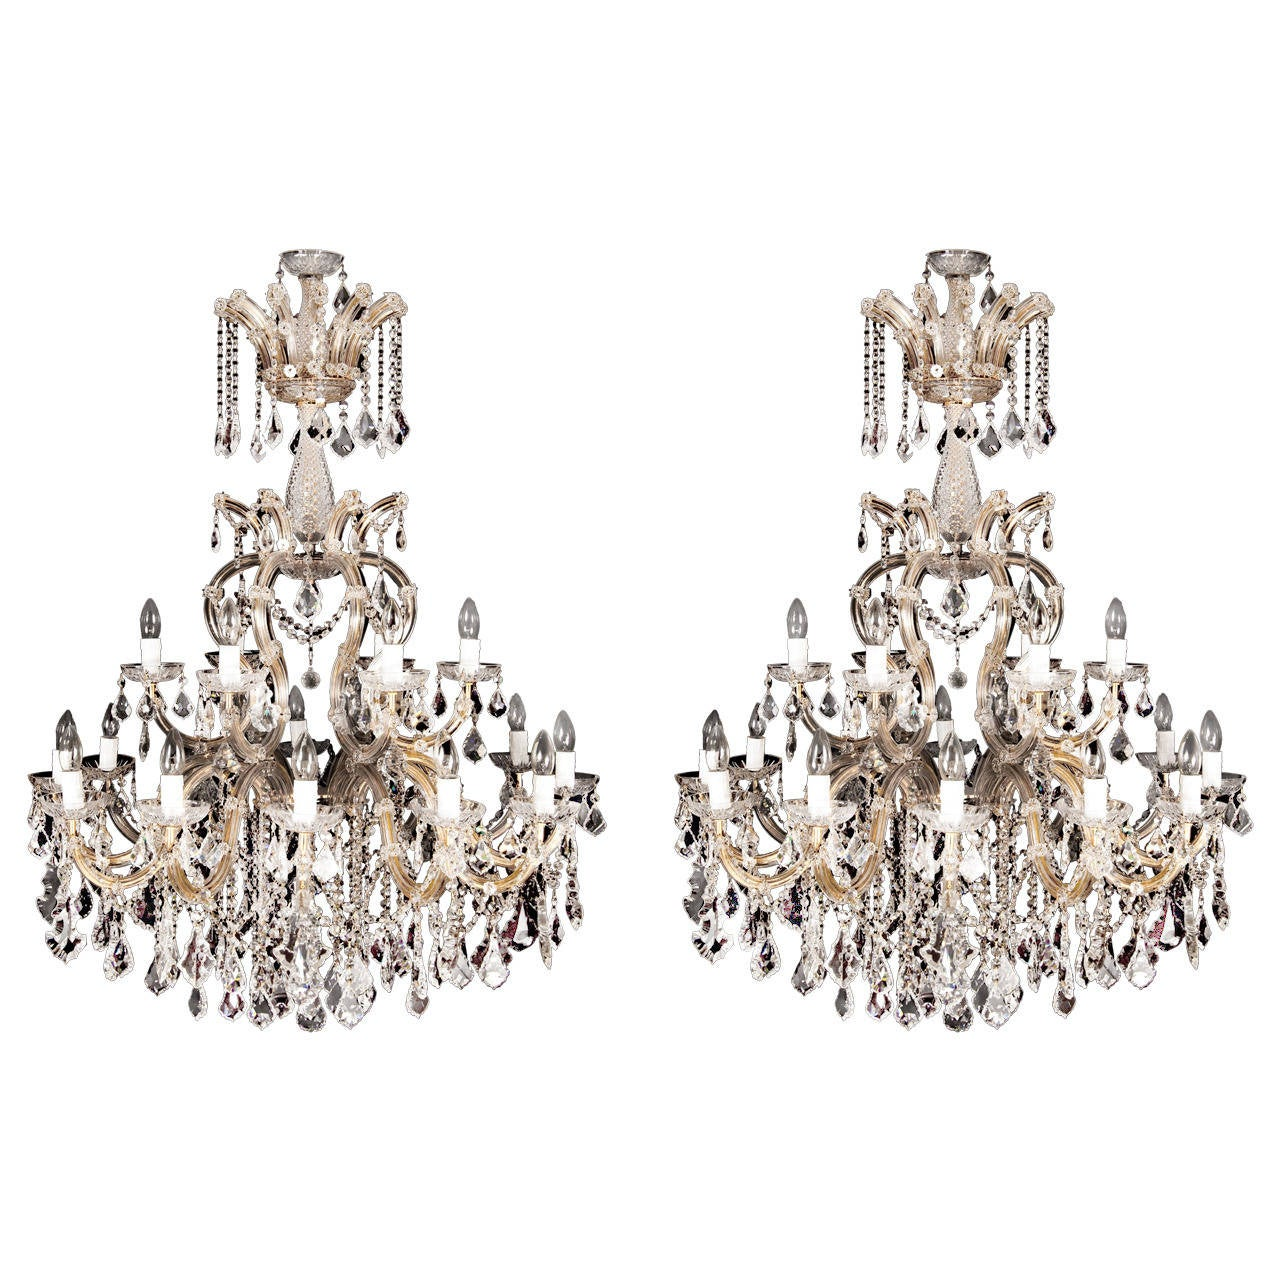 Pair Of Cut Glass Chandeliers At 1stdibs